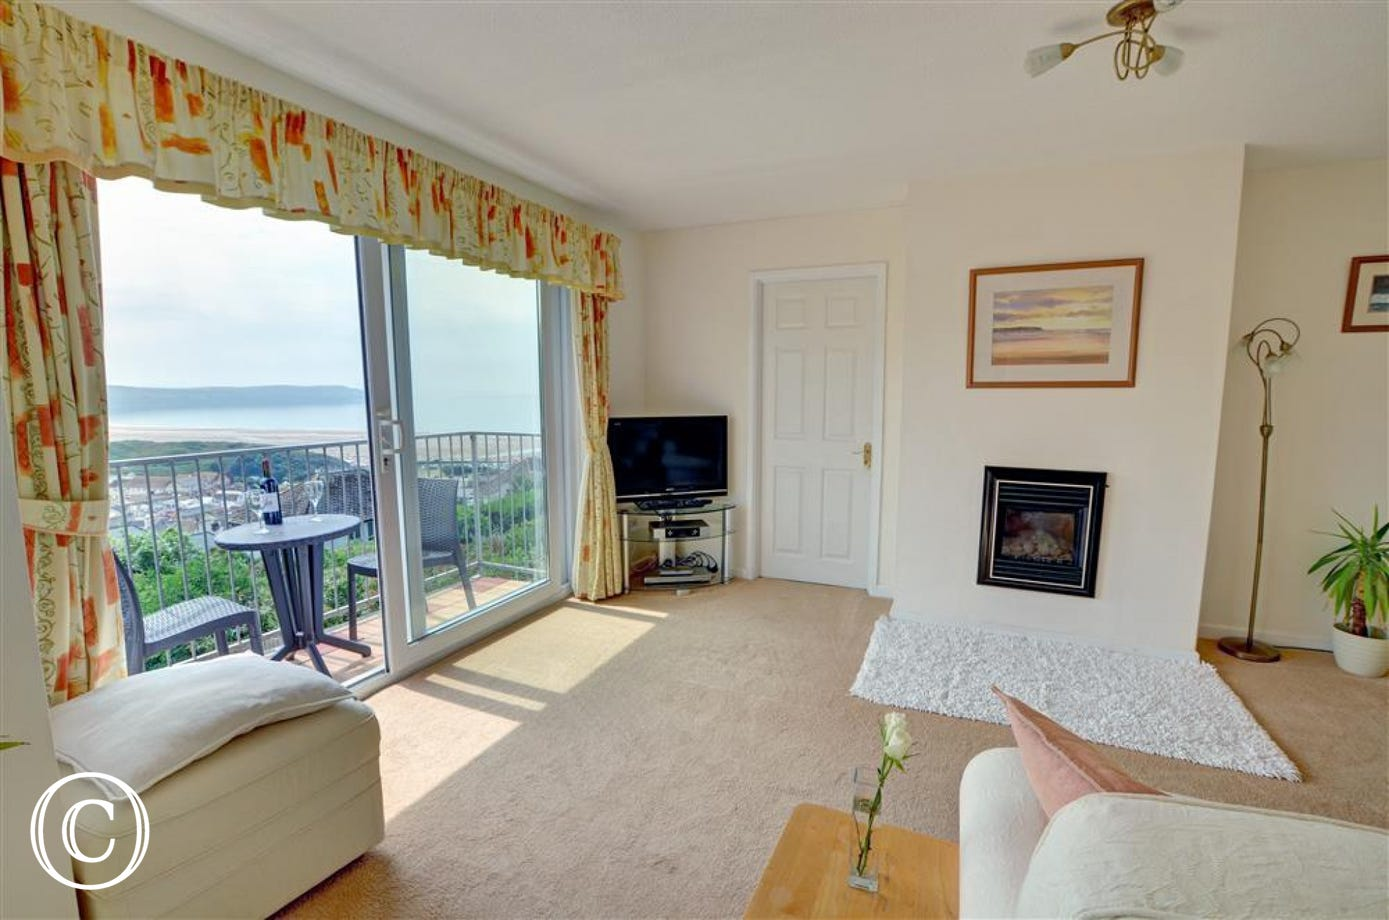 The sitting room with impressive views towards Woolacombe beach.